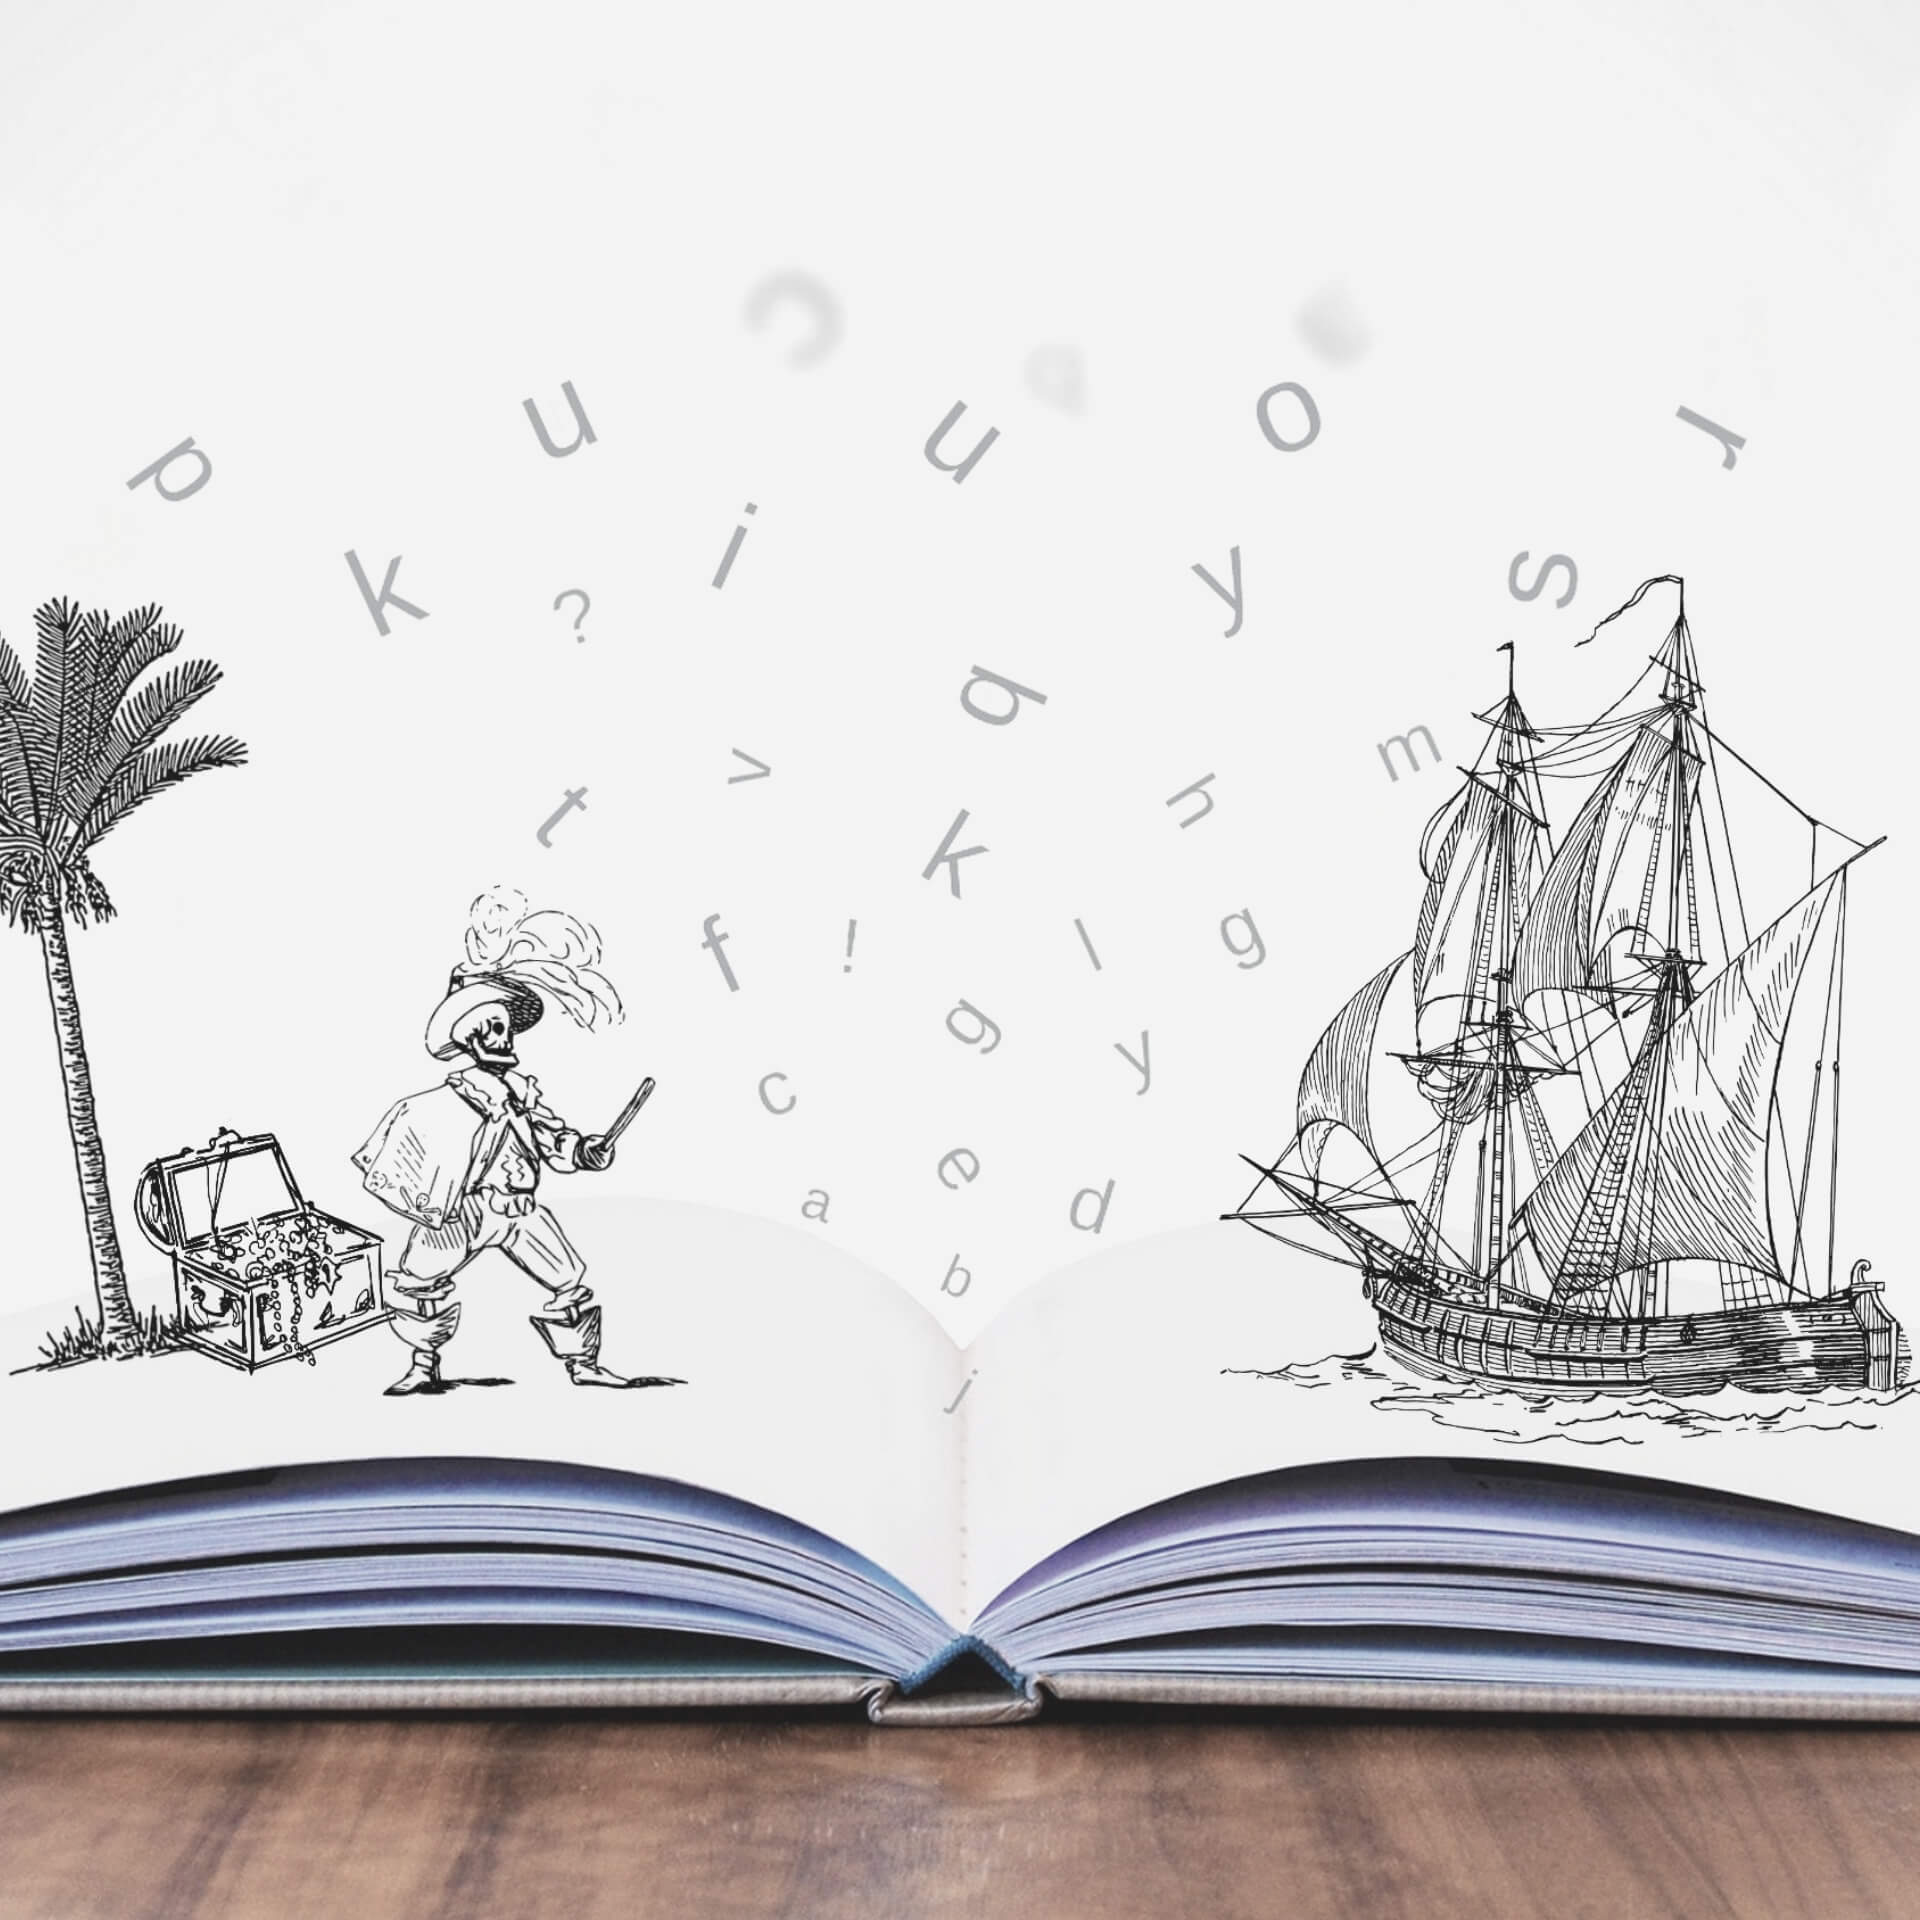 storytelling for nonprofits: A book lying open with a tree, treasure chest, and an undead pirate on one page, with a pirate ship on the other.